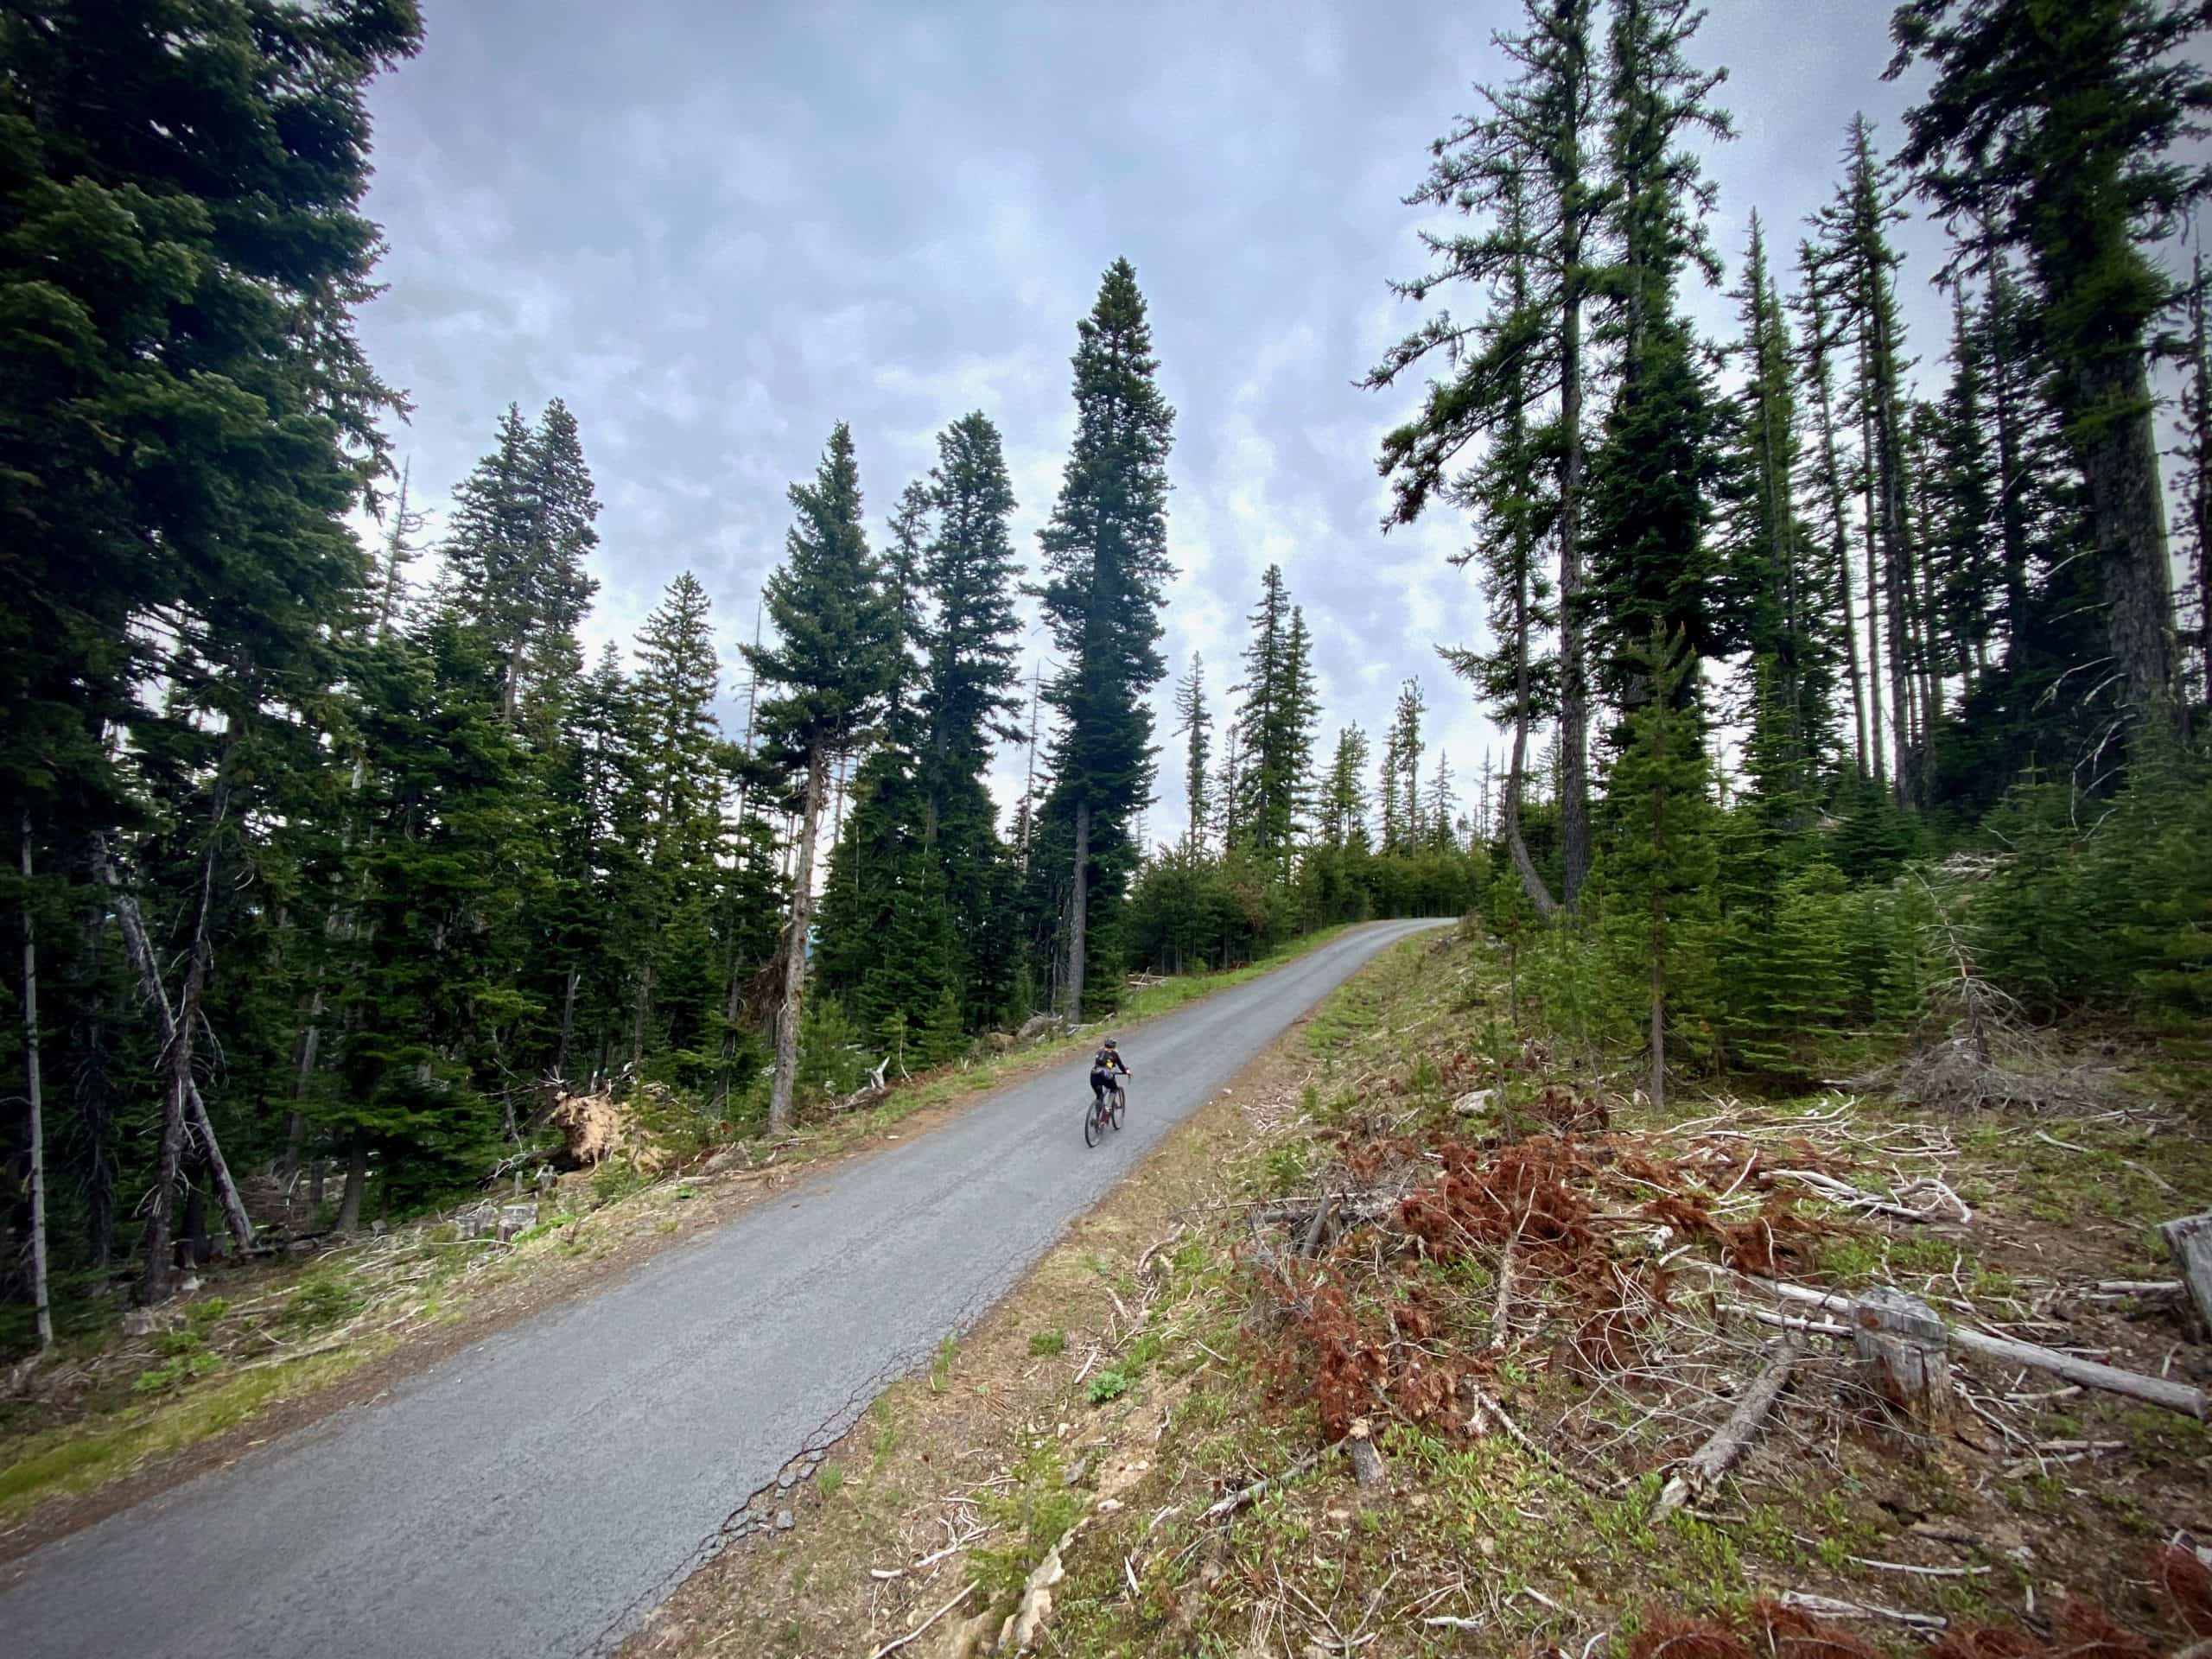 Woman cyclist on Cold Spring road approaching summit of climb near Beaver Creek Wilderness.